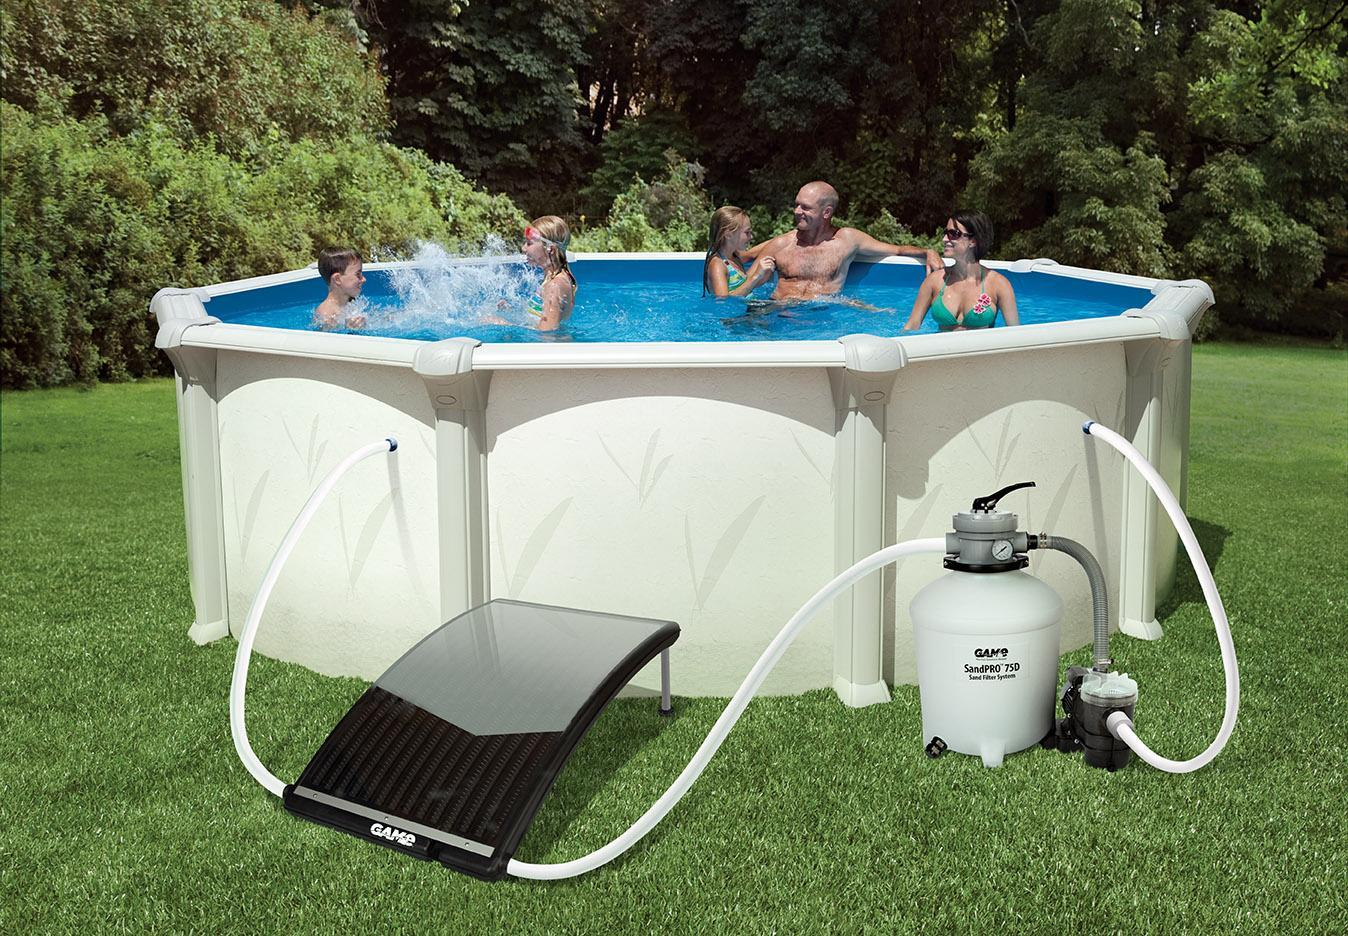 C:\Users\Luckyglog\Downloads\best-Above-Ground-Pool-Heater.jpg